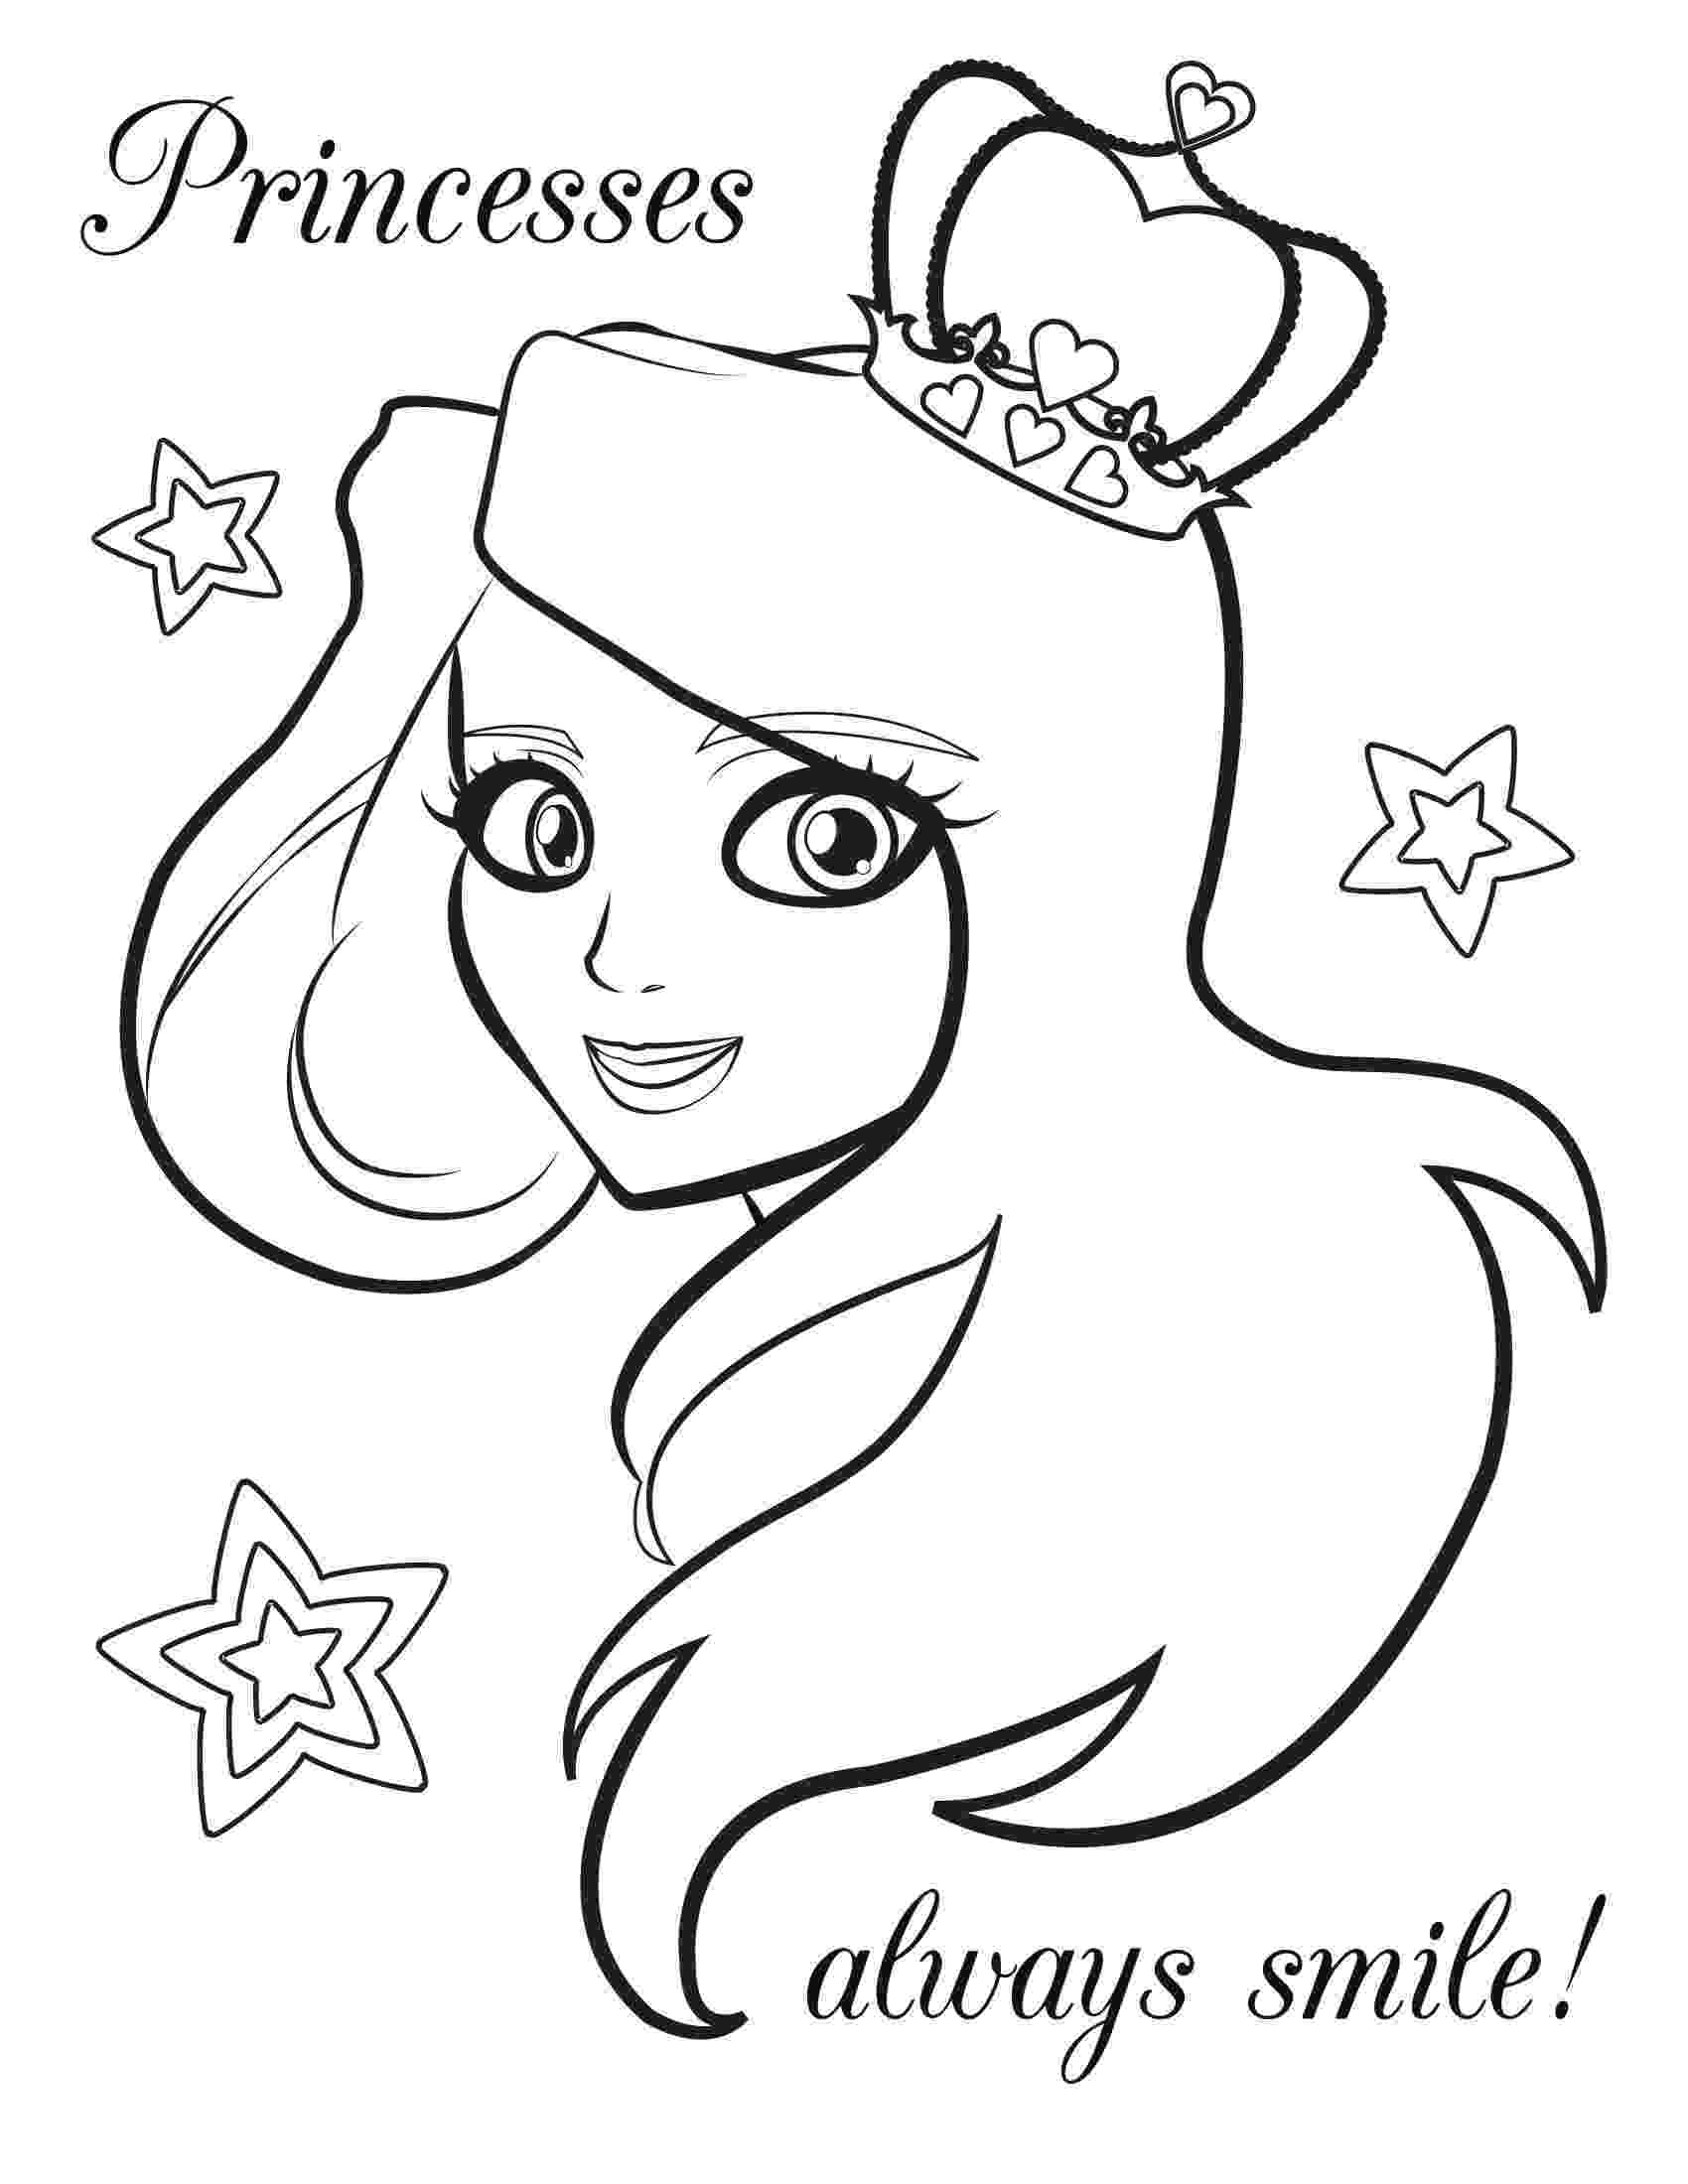 coloring pages for girls princess 2014 free coloring pages of princess to print for girls girls pages coloring for princess